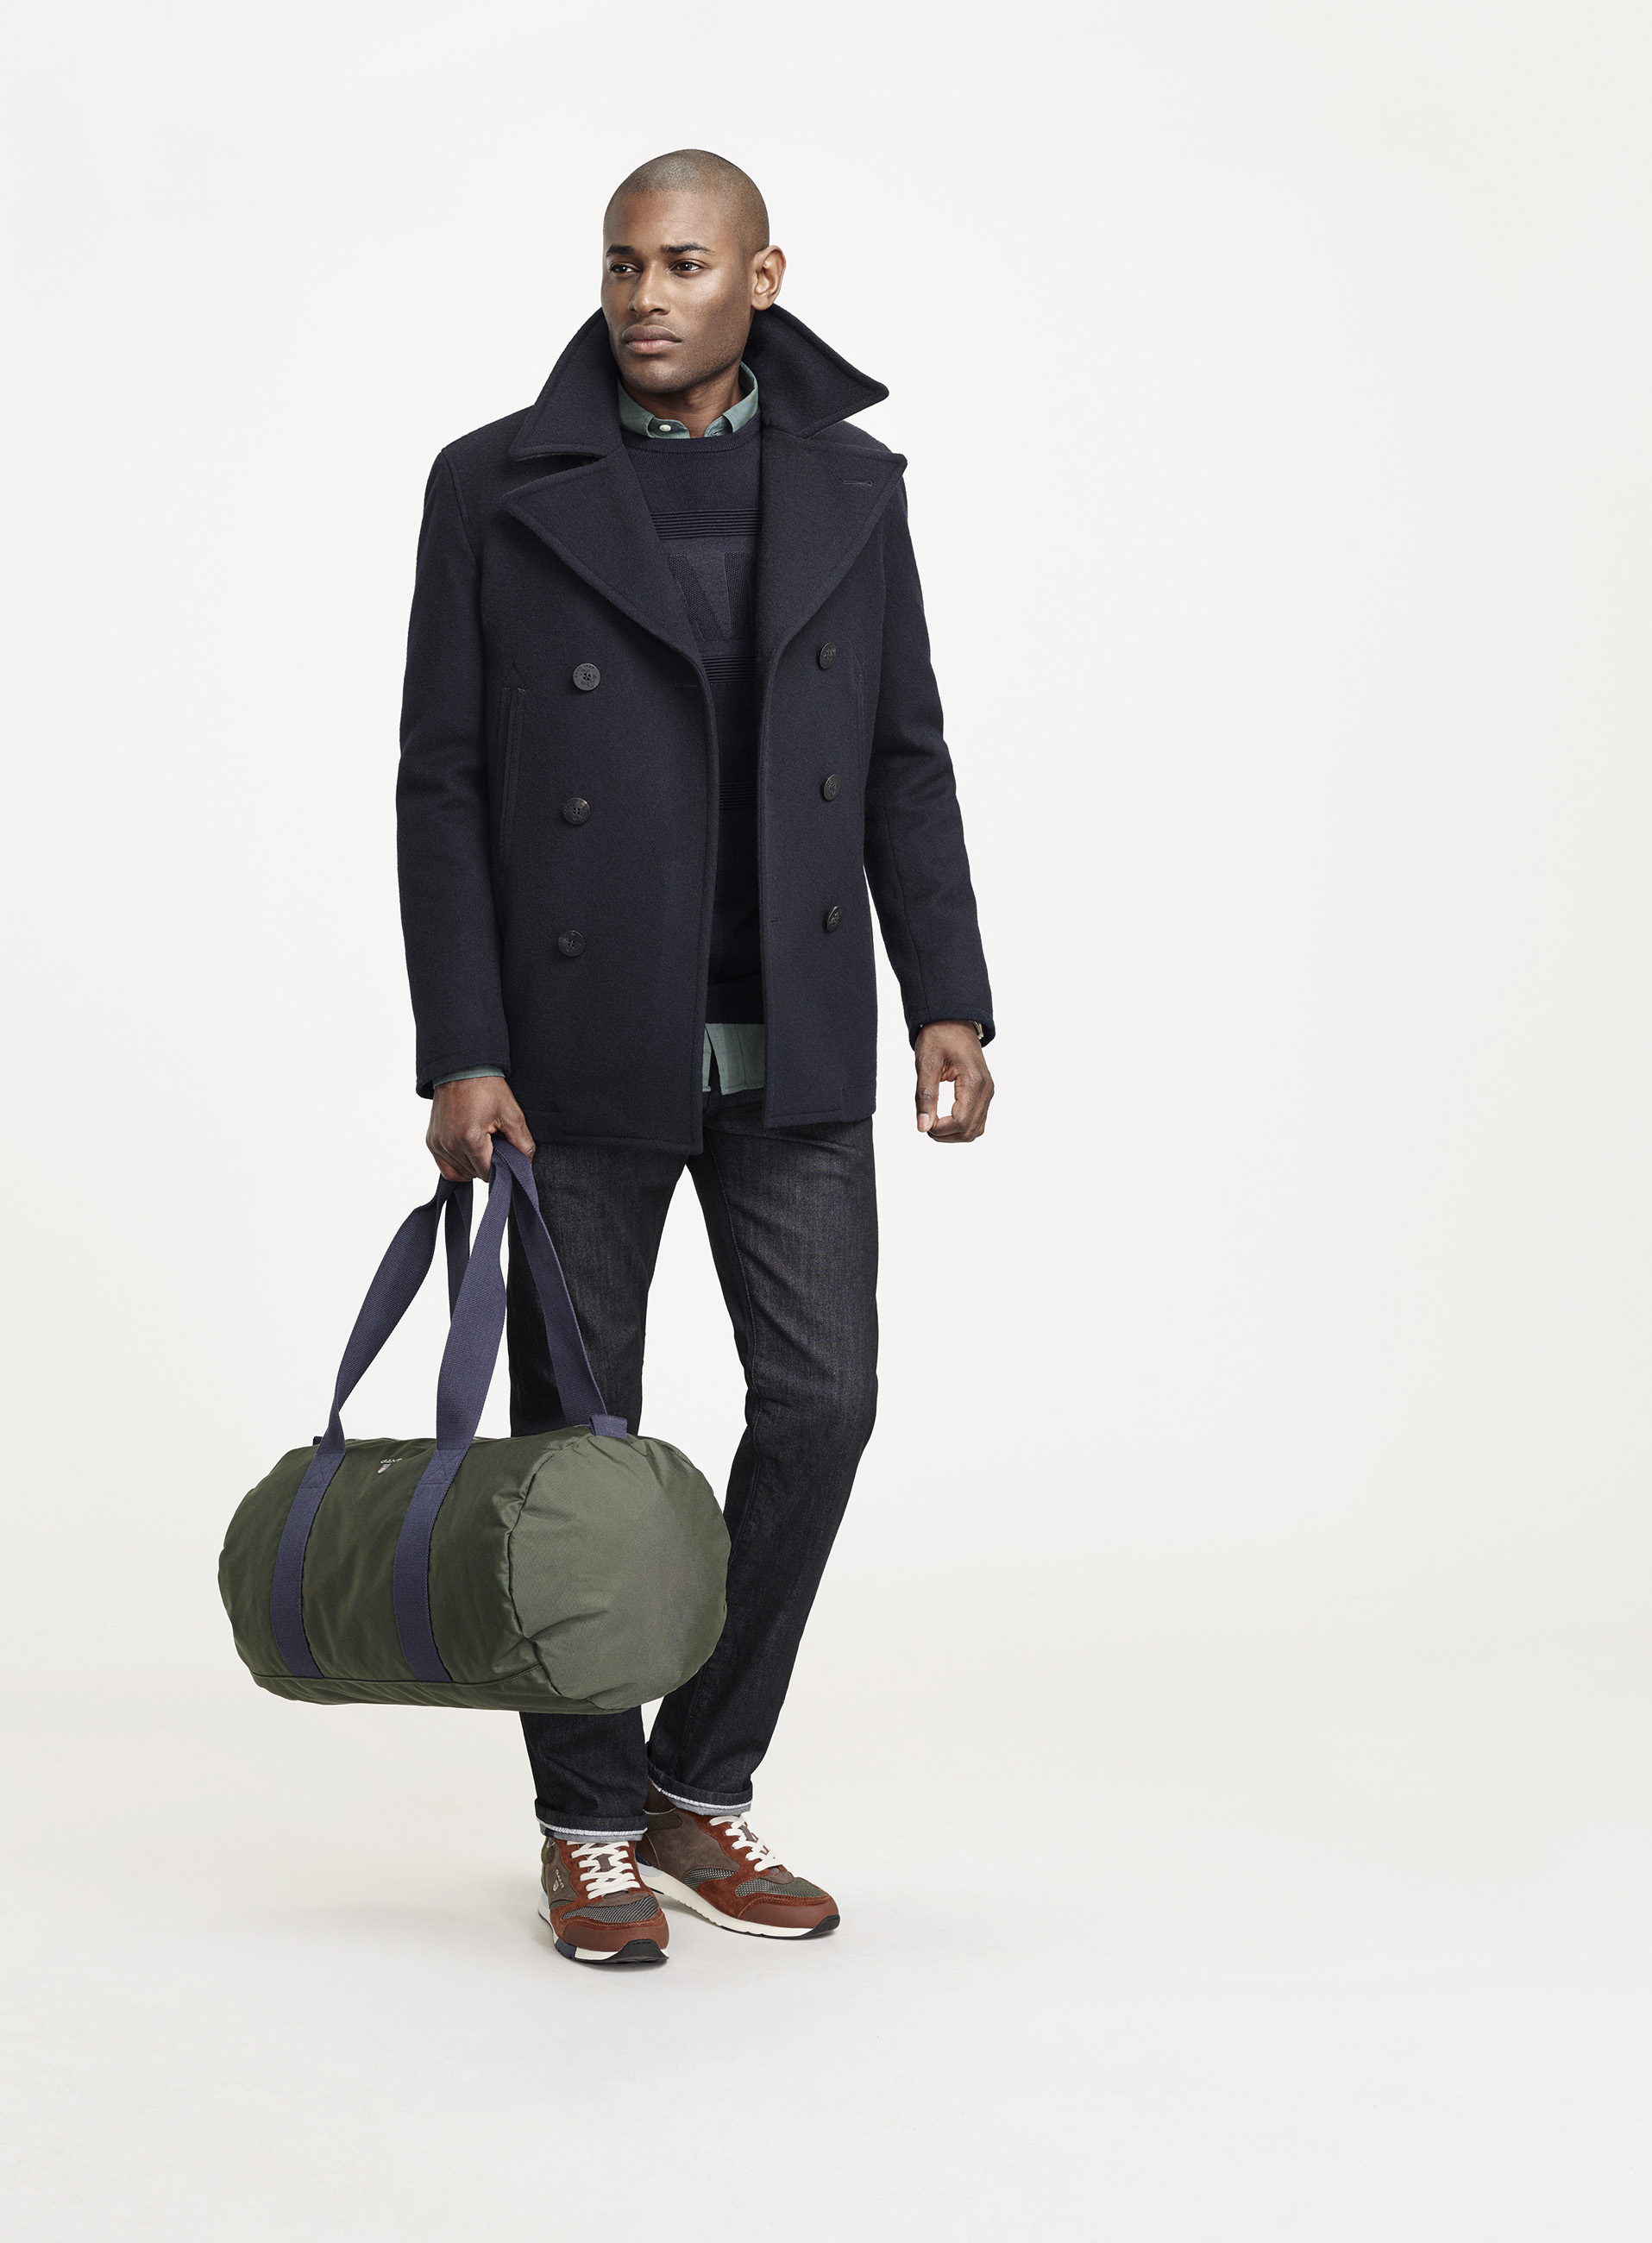 fedbcffb845 GANT Fall/Winter 2016. The Harbour Parka. The Reversible Pea Coat